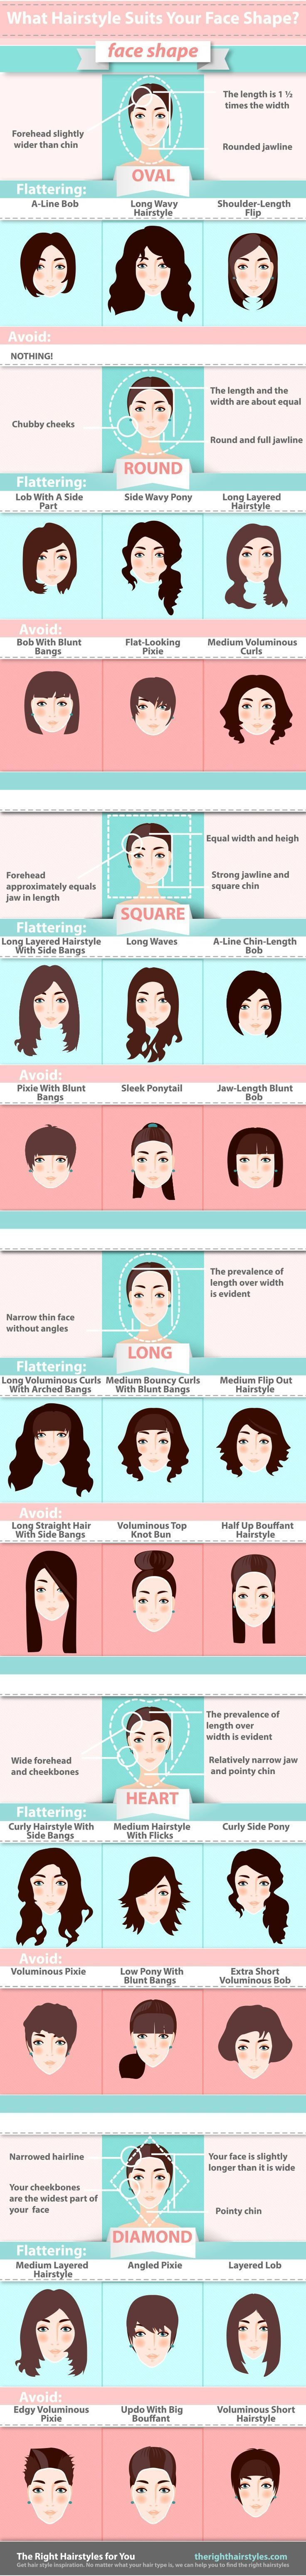 Guide: The Perfect Hairstyle For Your Face Shape | Best Beauty Tips And Fashion ...